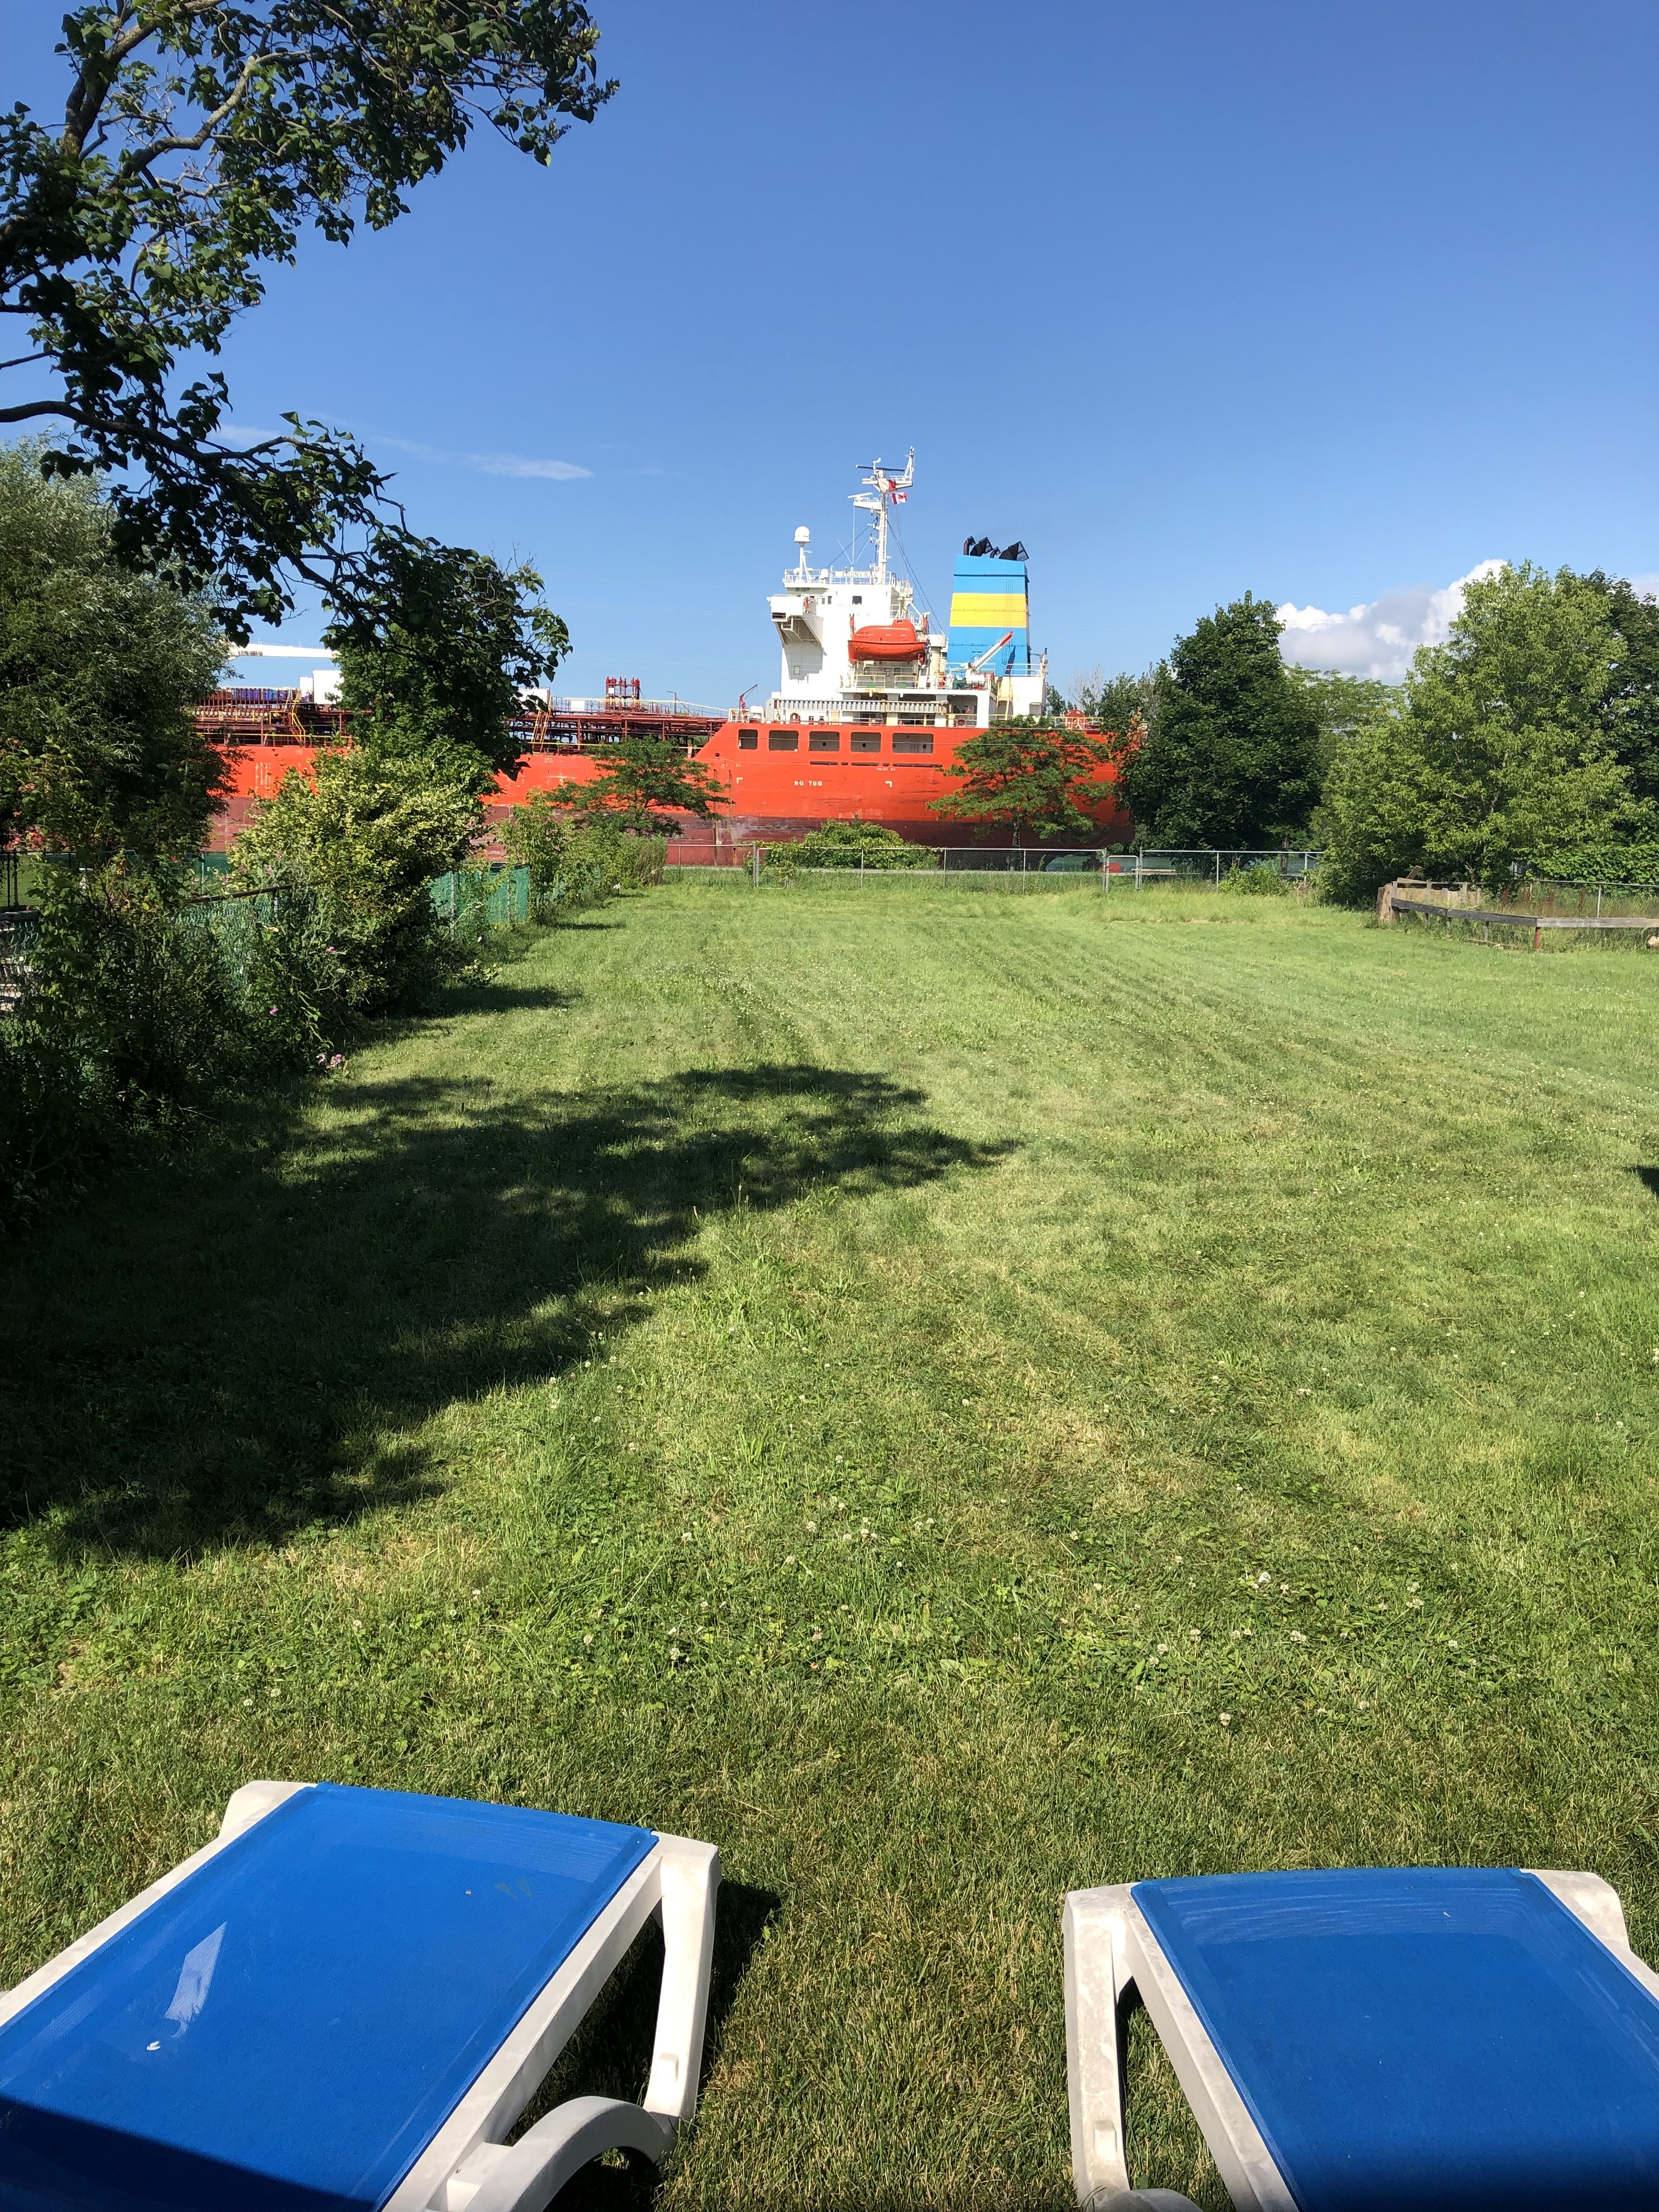 Lawn chairs overlooking backyard with the view of a large ship